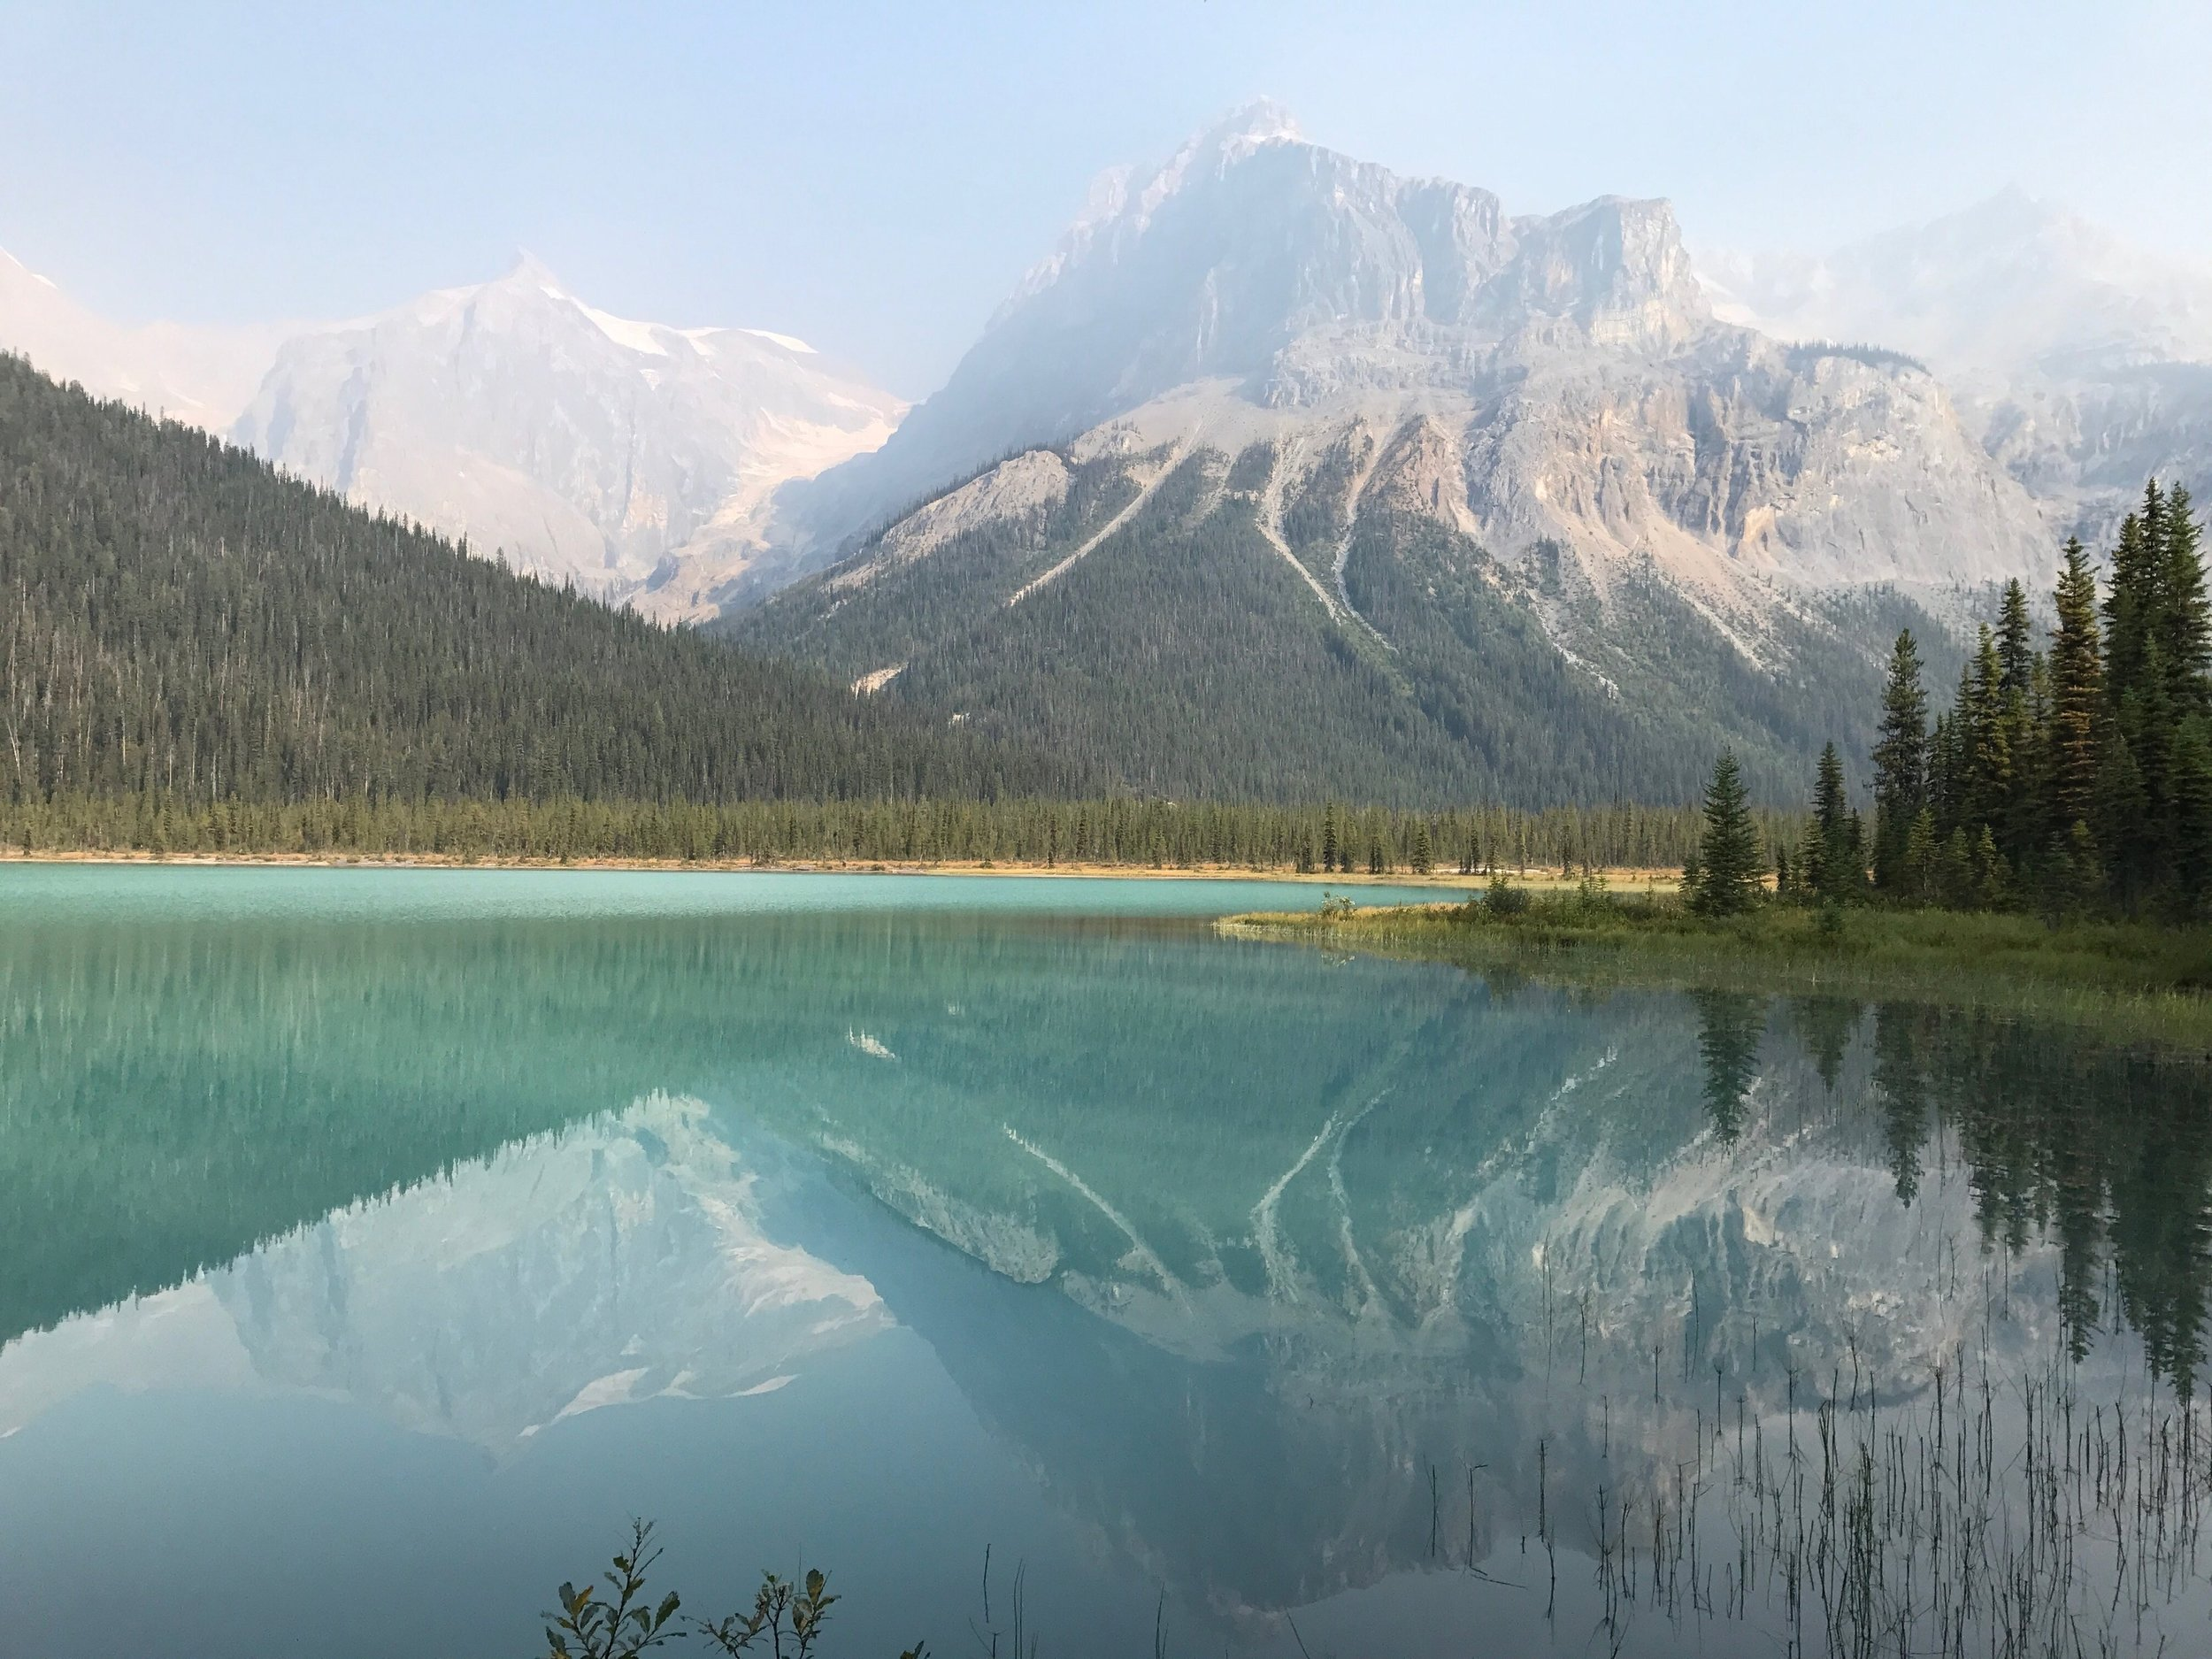 Emerald Lake (Yoho National Park, Canada)